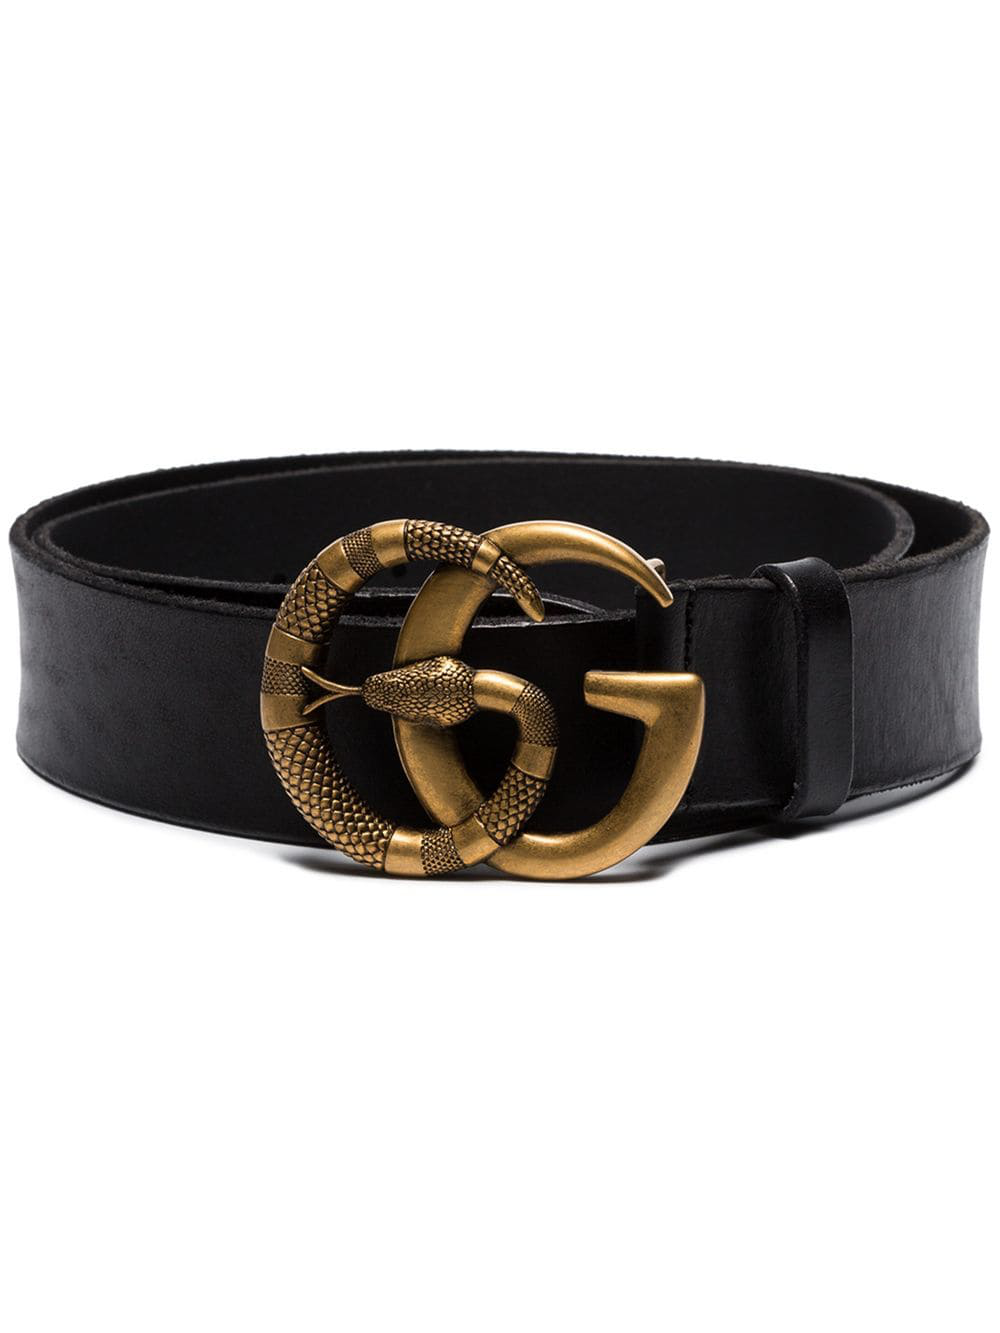 f554ae2a36c Gucci Leather Belt With Double G Buckle With Snake In Black